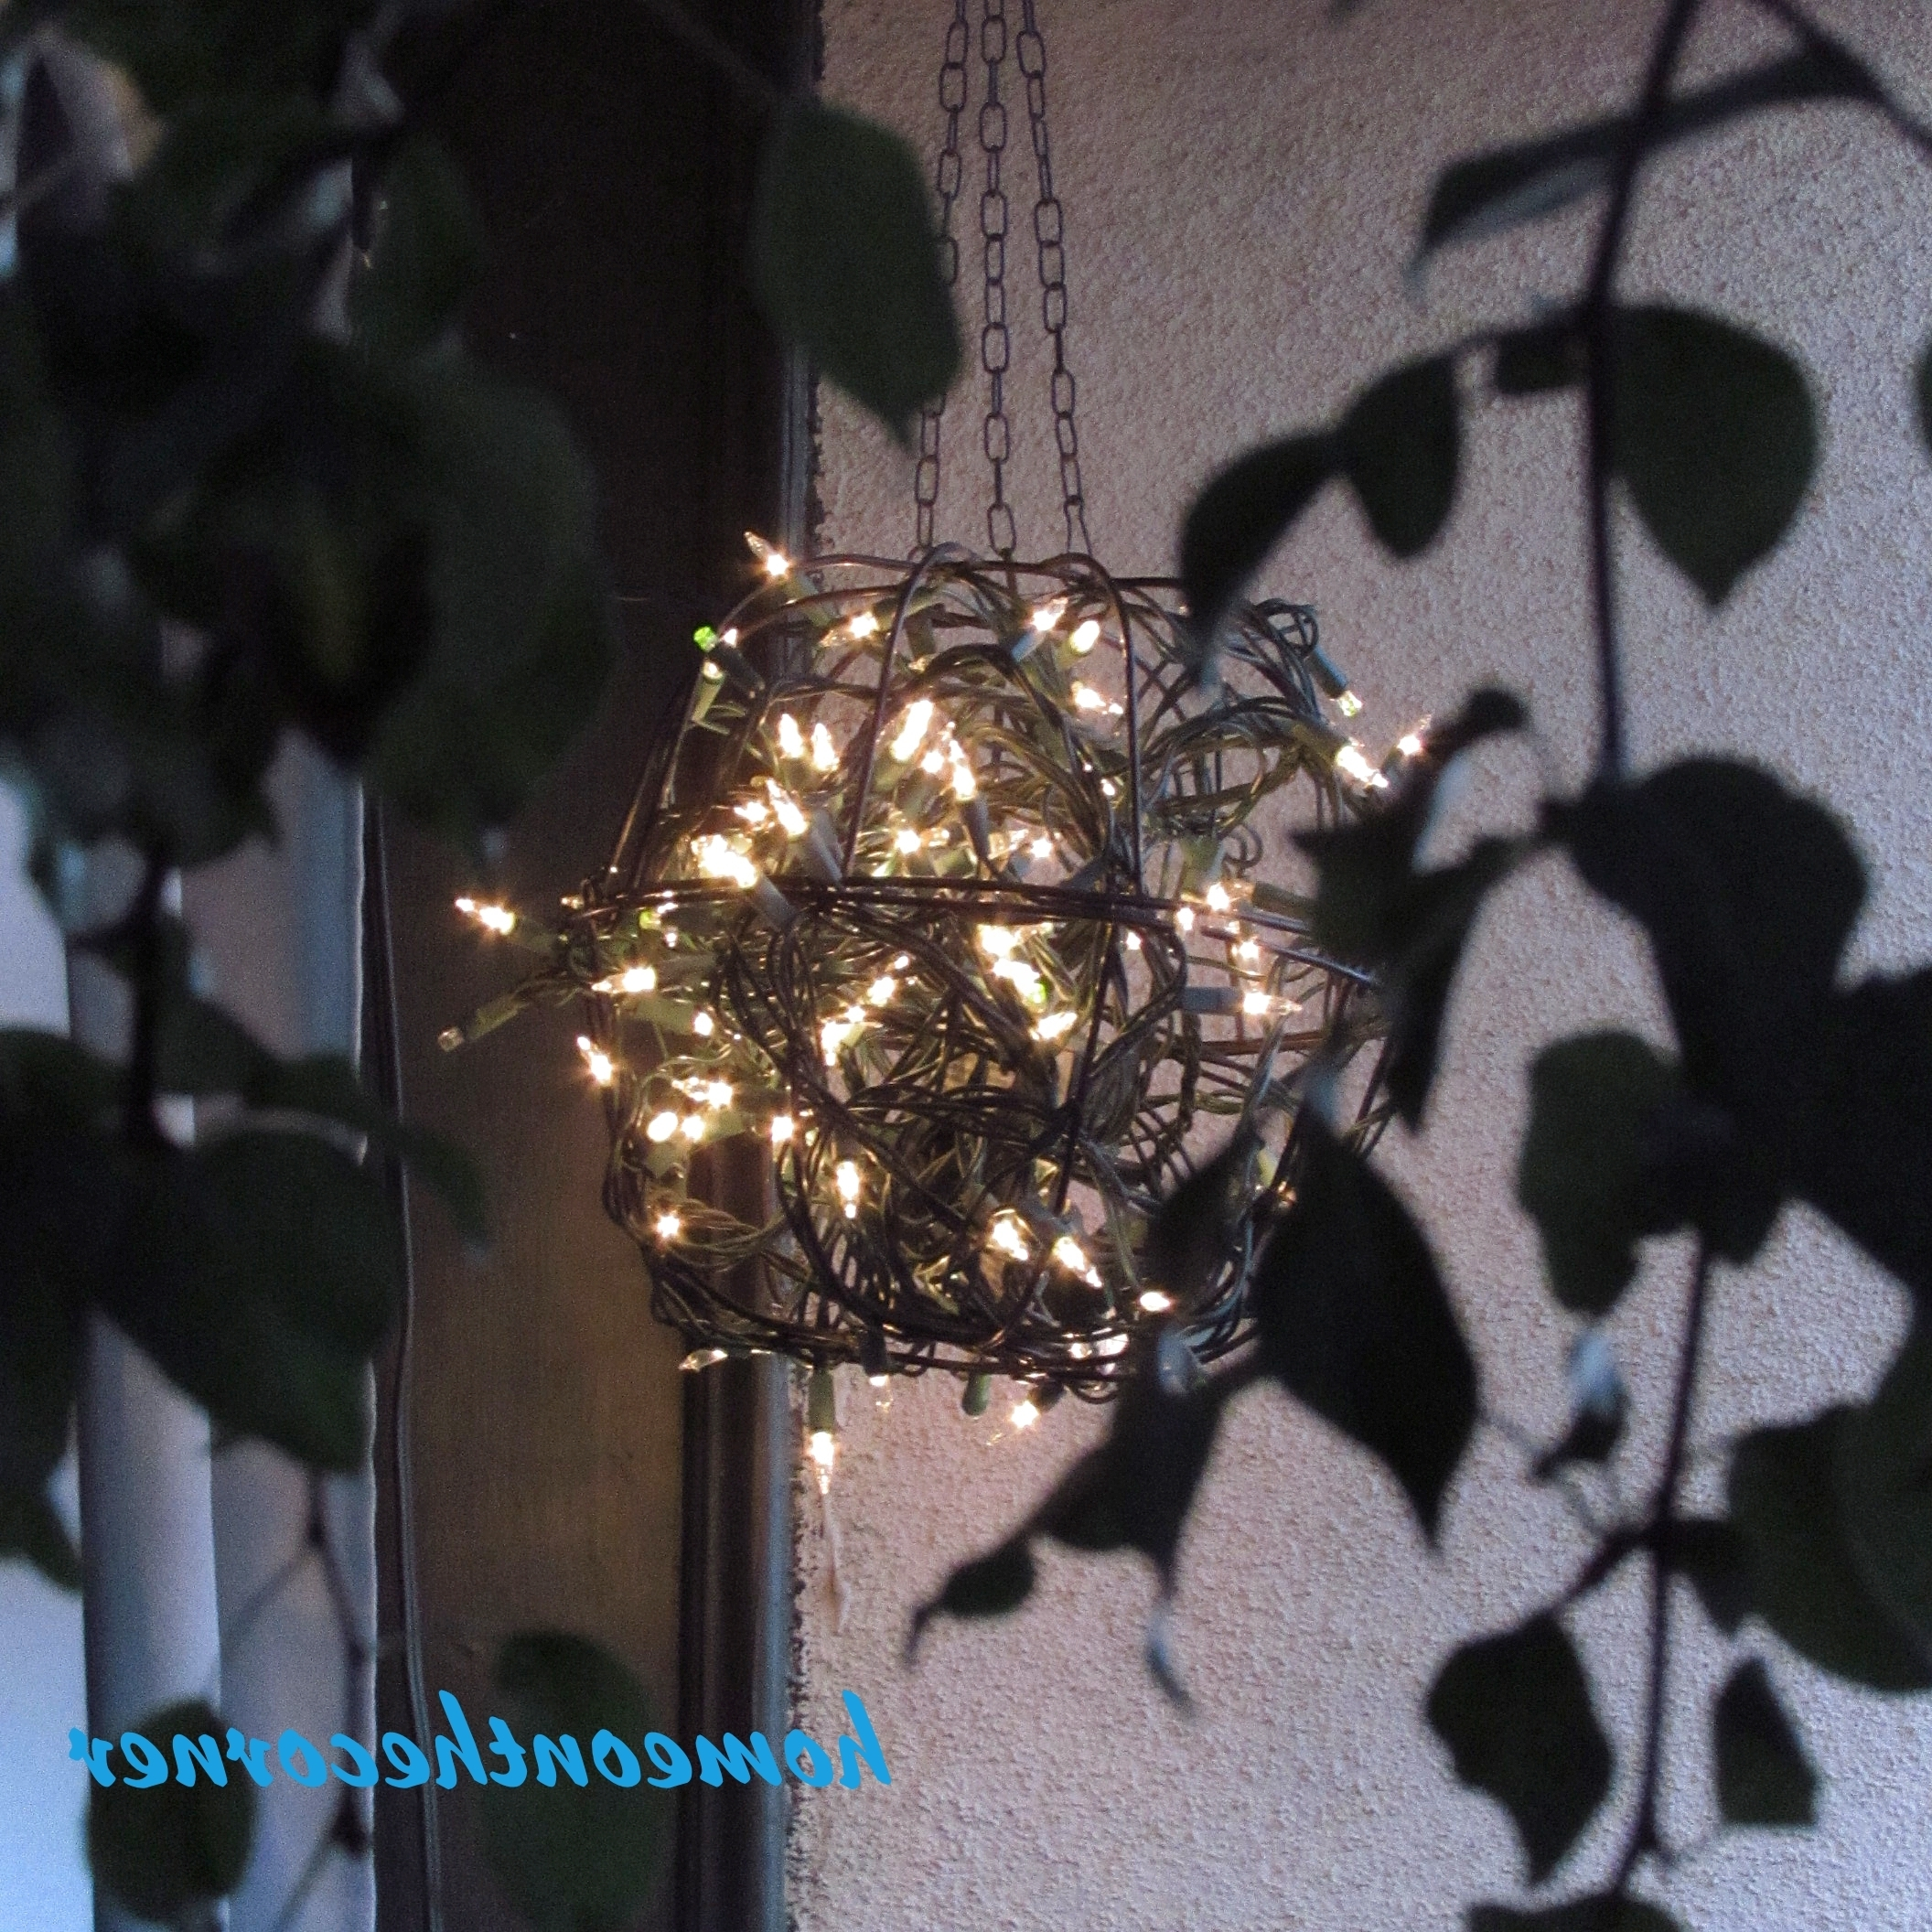 Outdoor Hanging Basket Lights Intended For Famous Hanging Flower Basket Light – Home On The Corner (View 13 of 20)